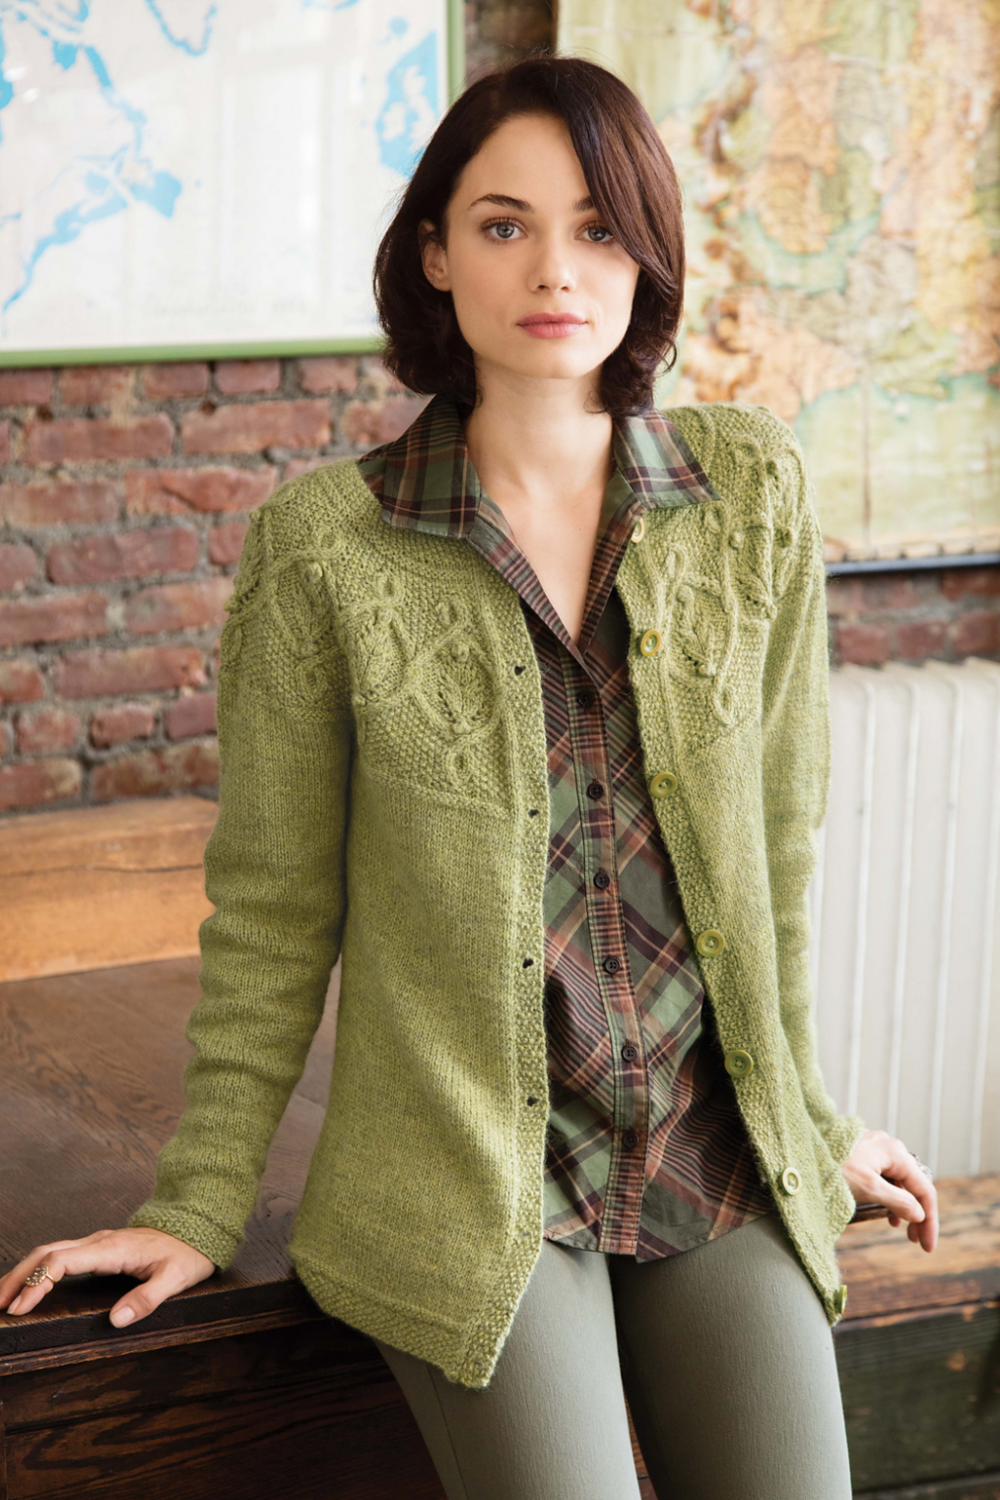 #19 Cabled Yoke Cardigan by Kristen TenDyke featuring The Fibre Co. Knightsbridge